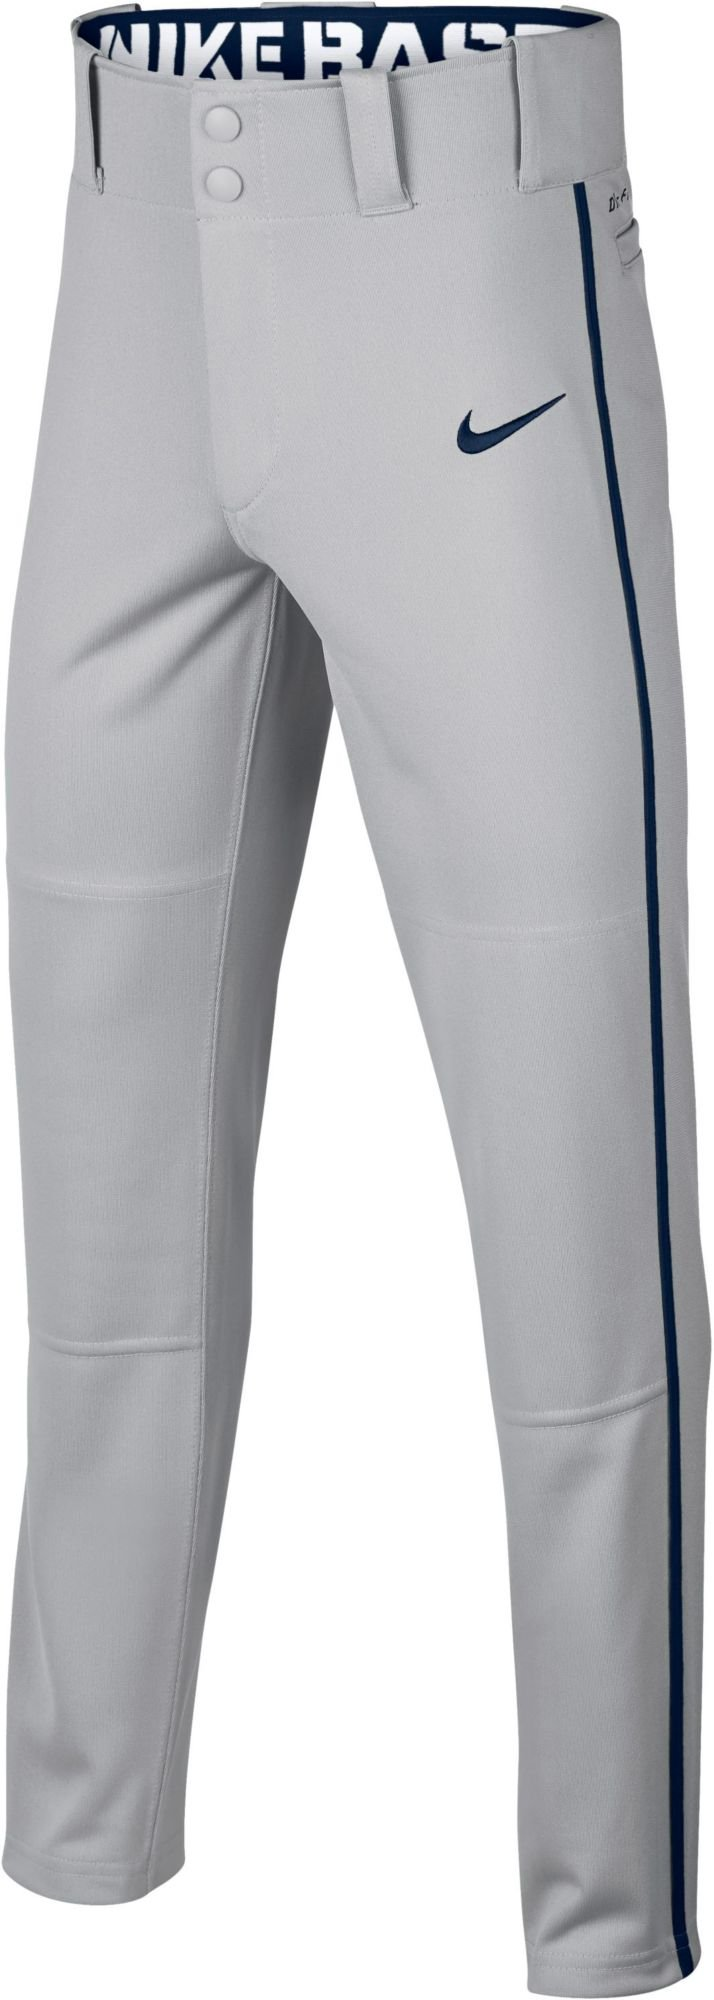 Nike Boy's Swoosh Piped Dri-FIT Baseball Pants (Grey/Navy, X-Small)